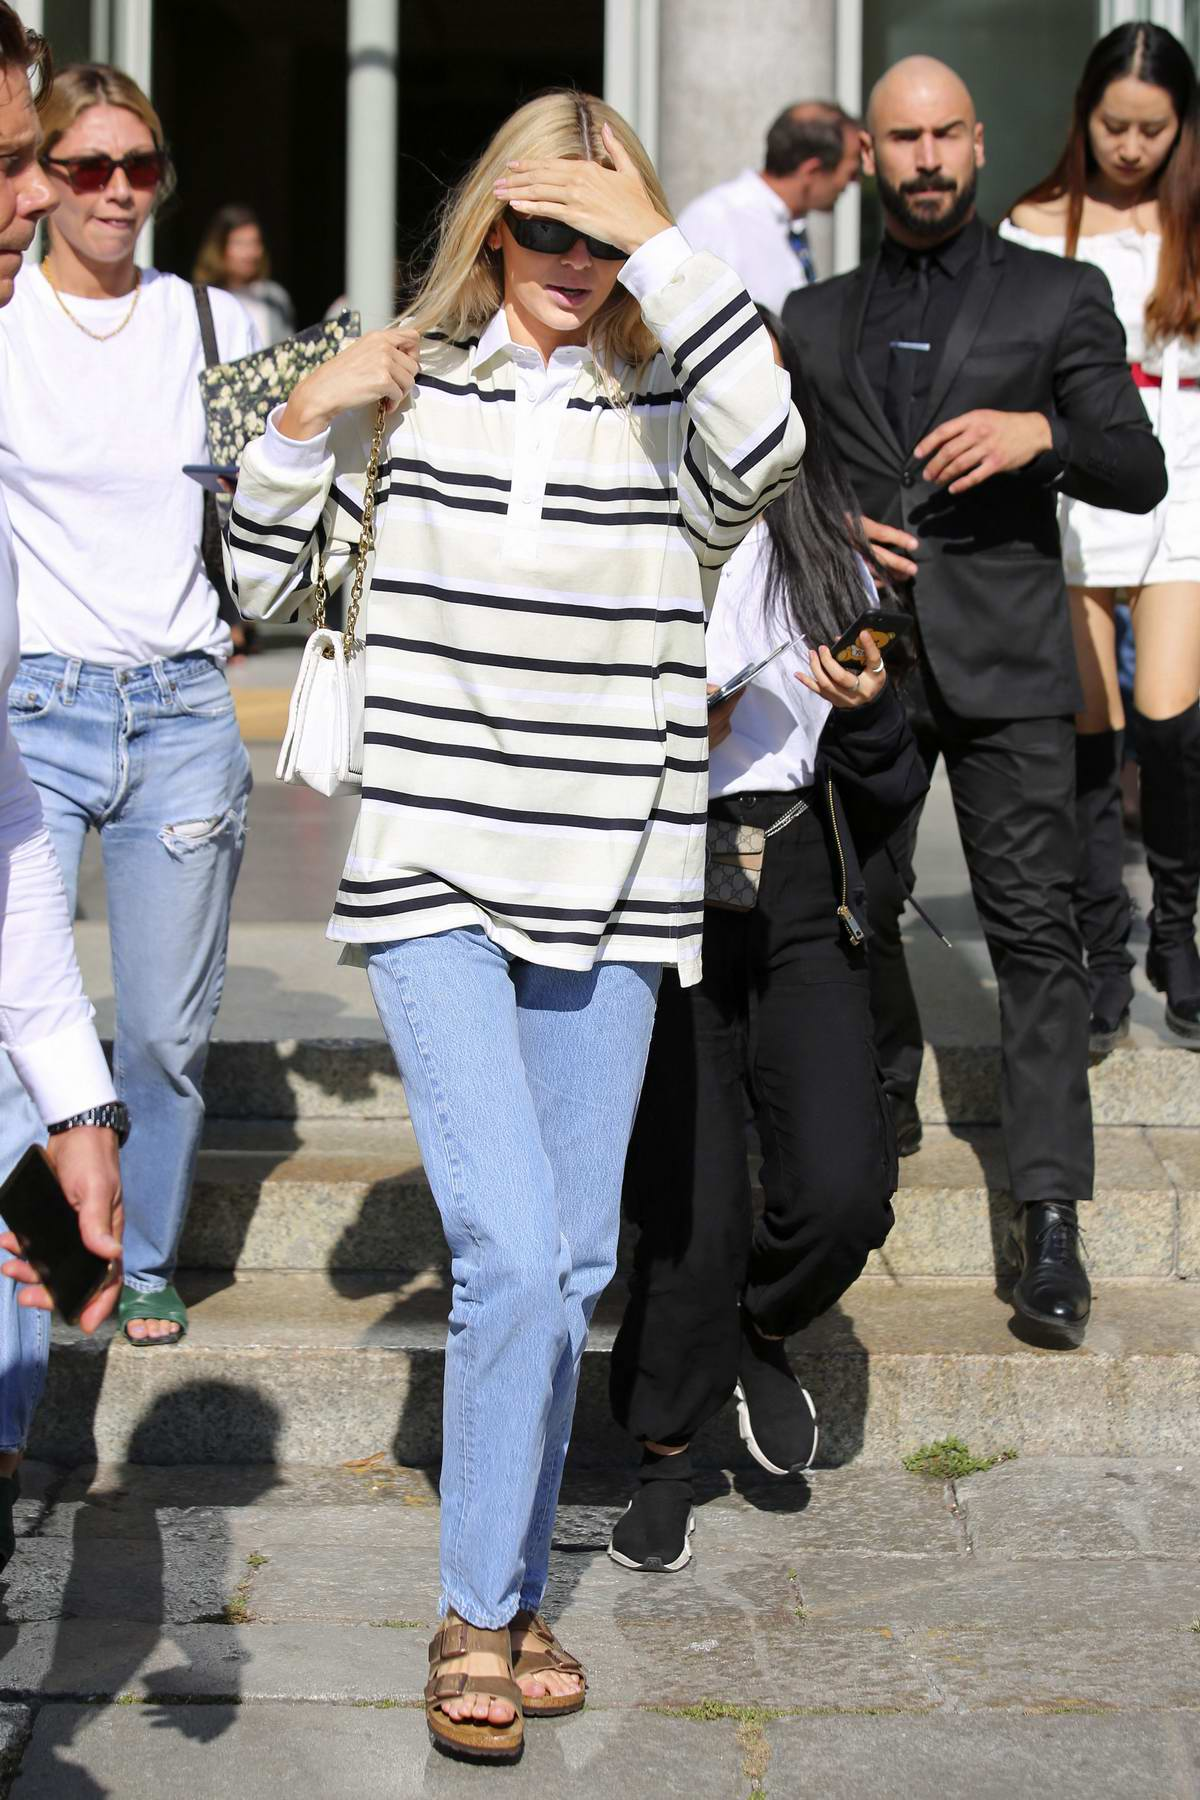 Kendall Jenner steps out donning stripes during Milan Fashion Week in Milan, Italy